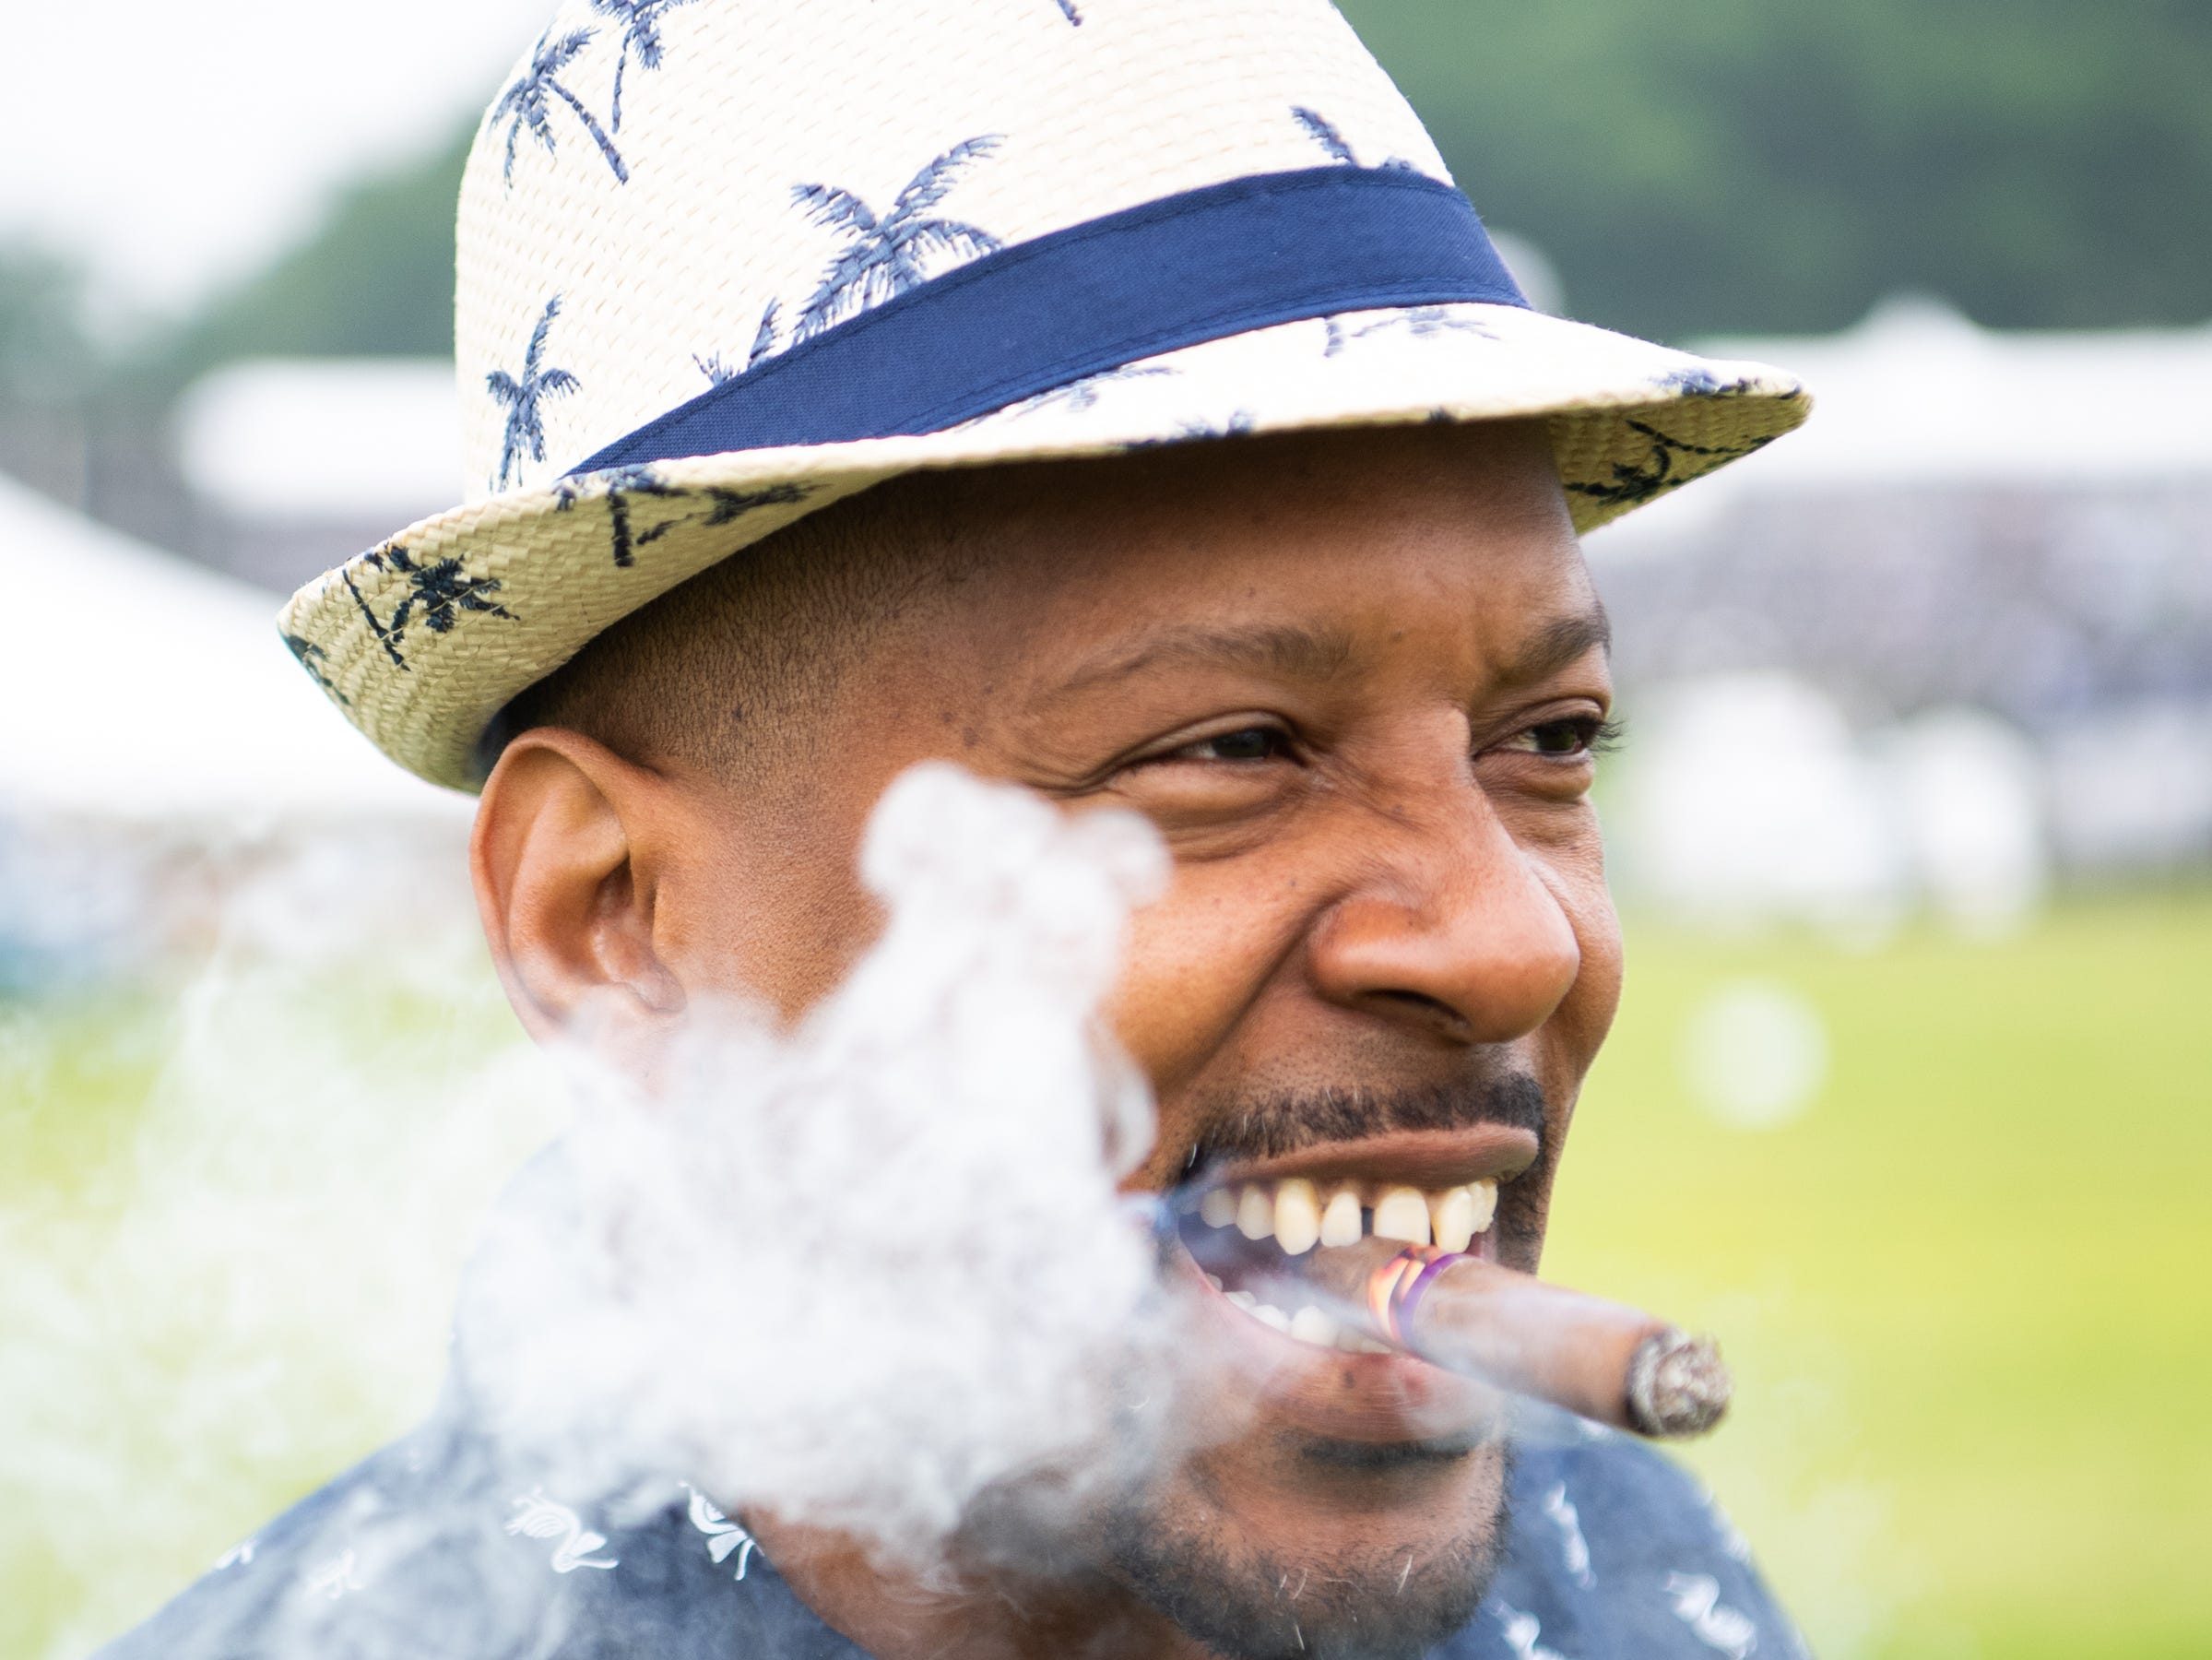 Jonte Mayor Gaines smokes a cigar during the Iroquois Steeplechase at Percy Warner Park Saturday, May 11, 2019, in Nashville, Tenn.